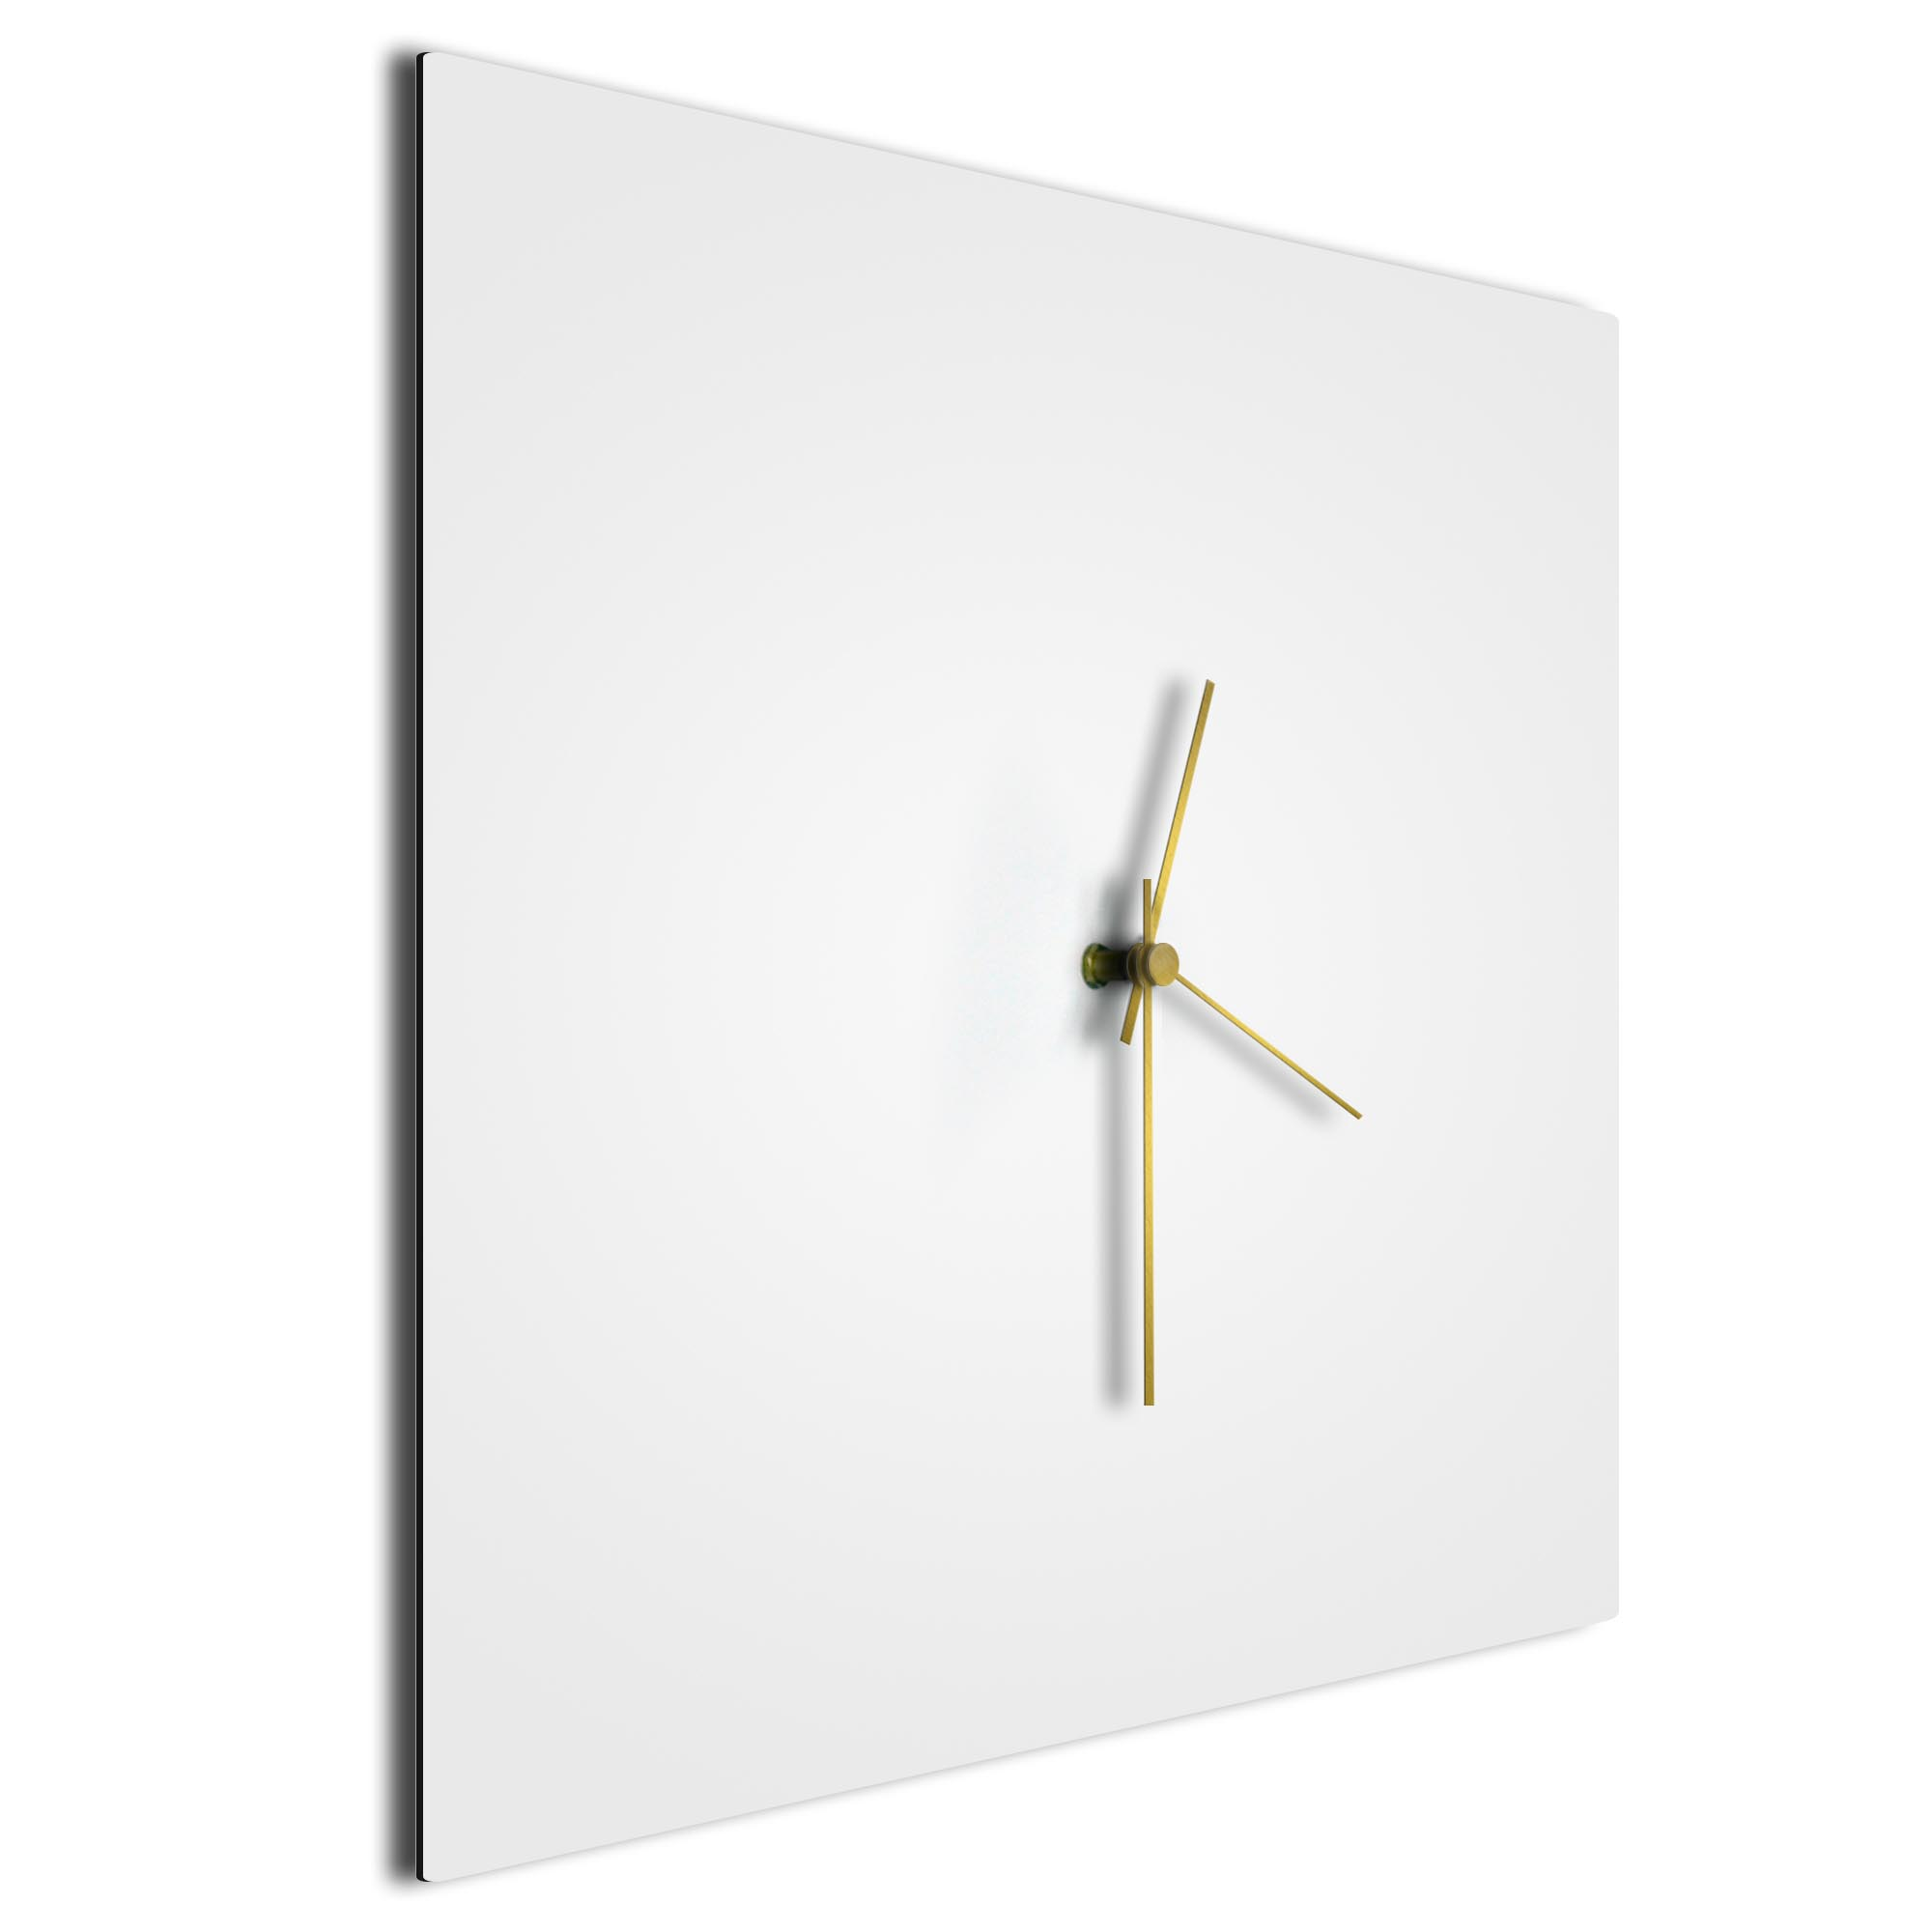 Whiteout Gold Square Clock - Image 2